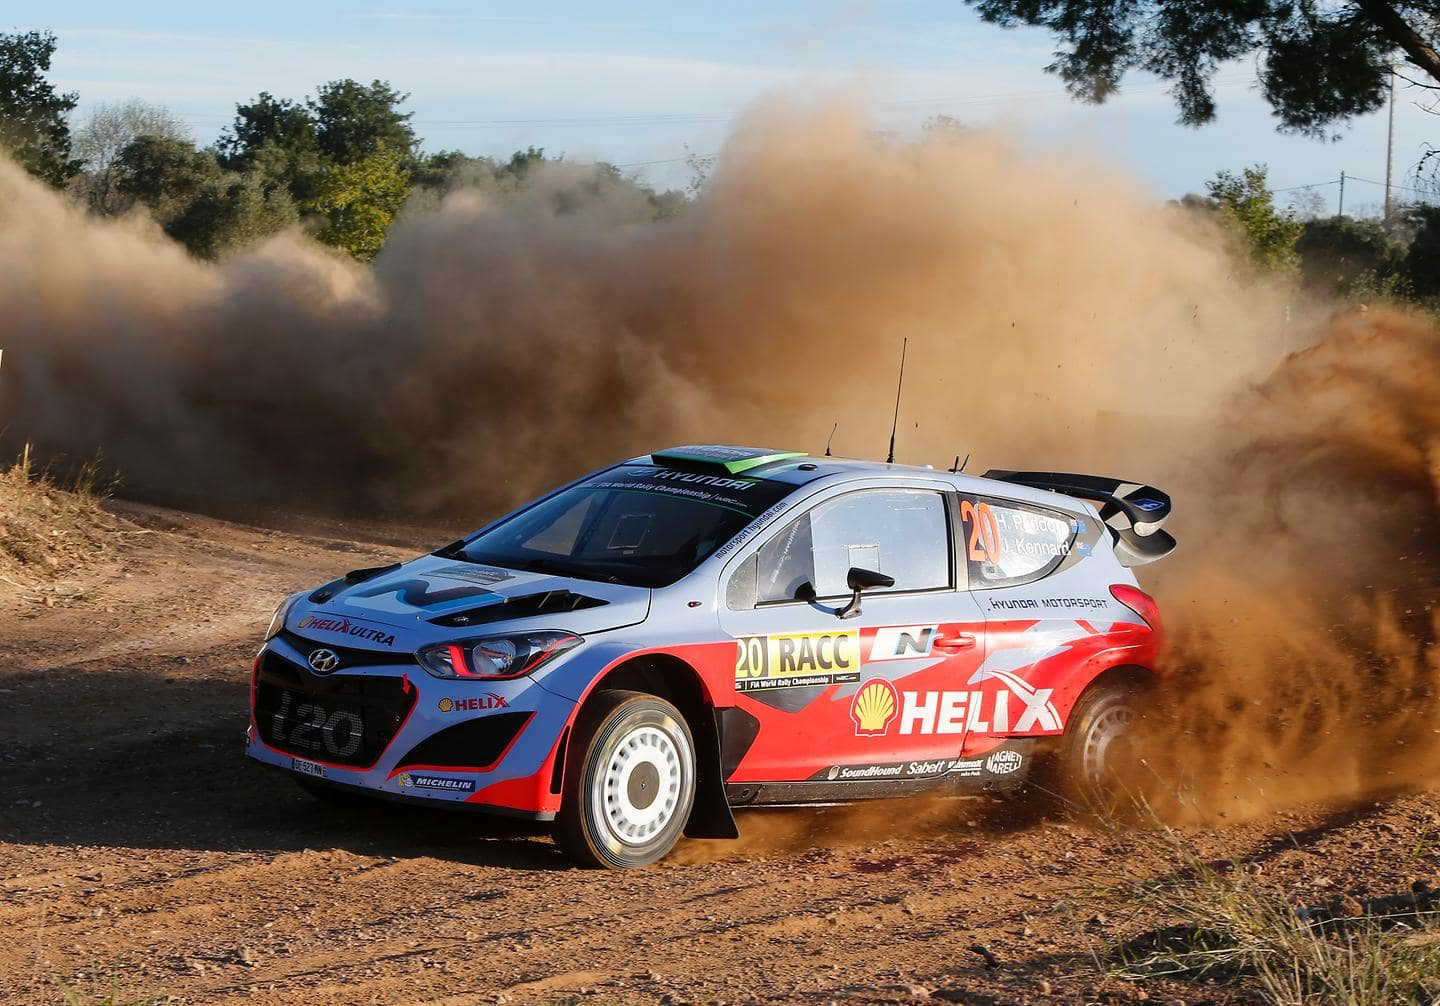 Hyundai Motorsport aims to reclaim second in Championship at mixed surface Rally de Espana